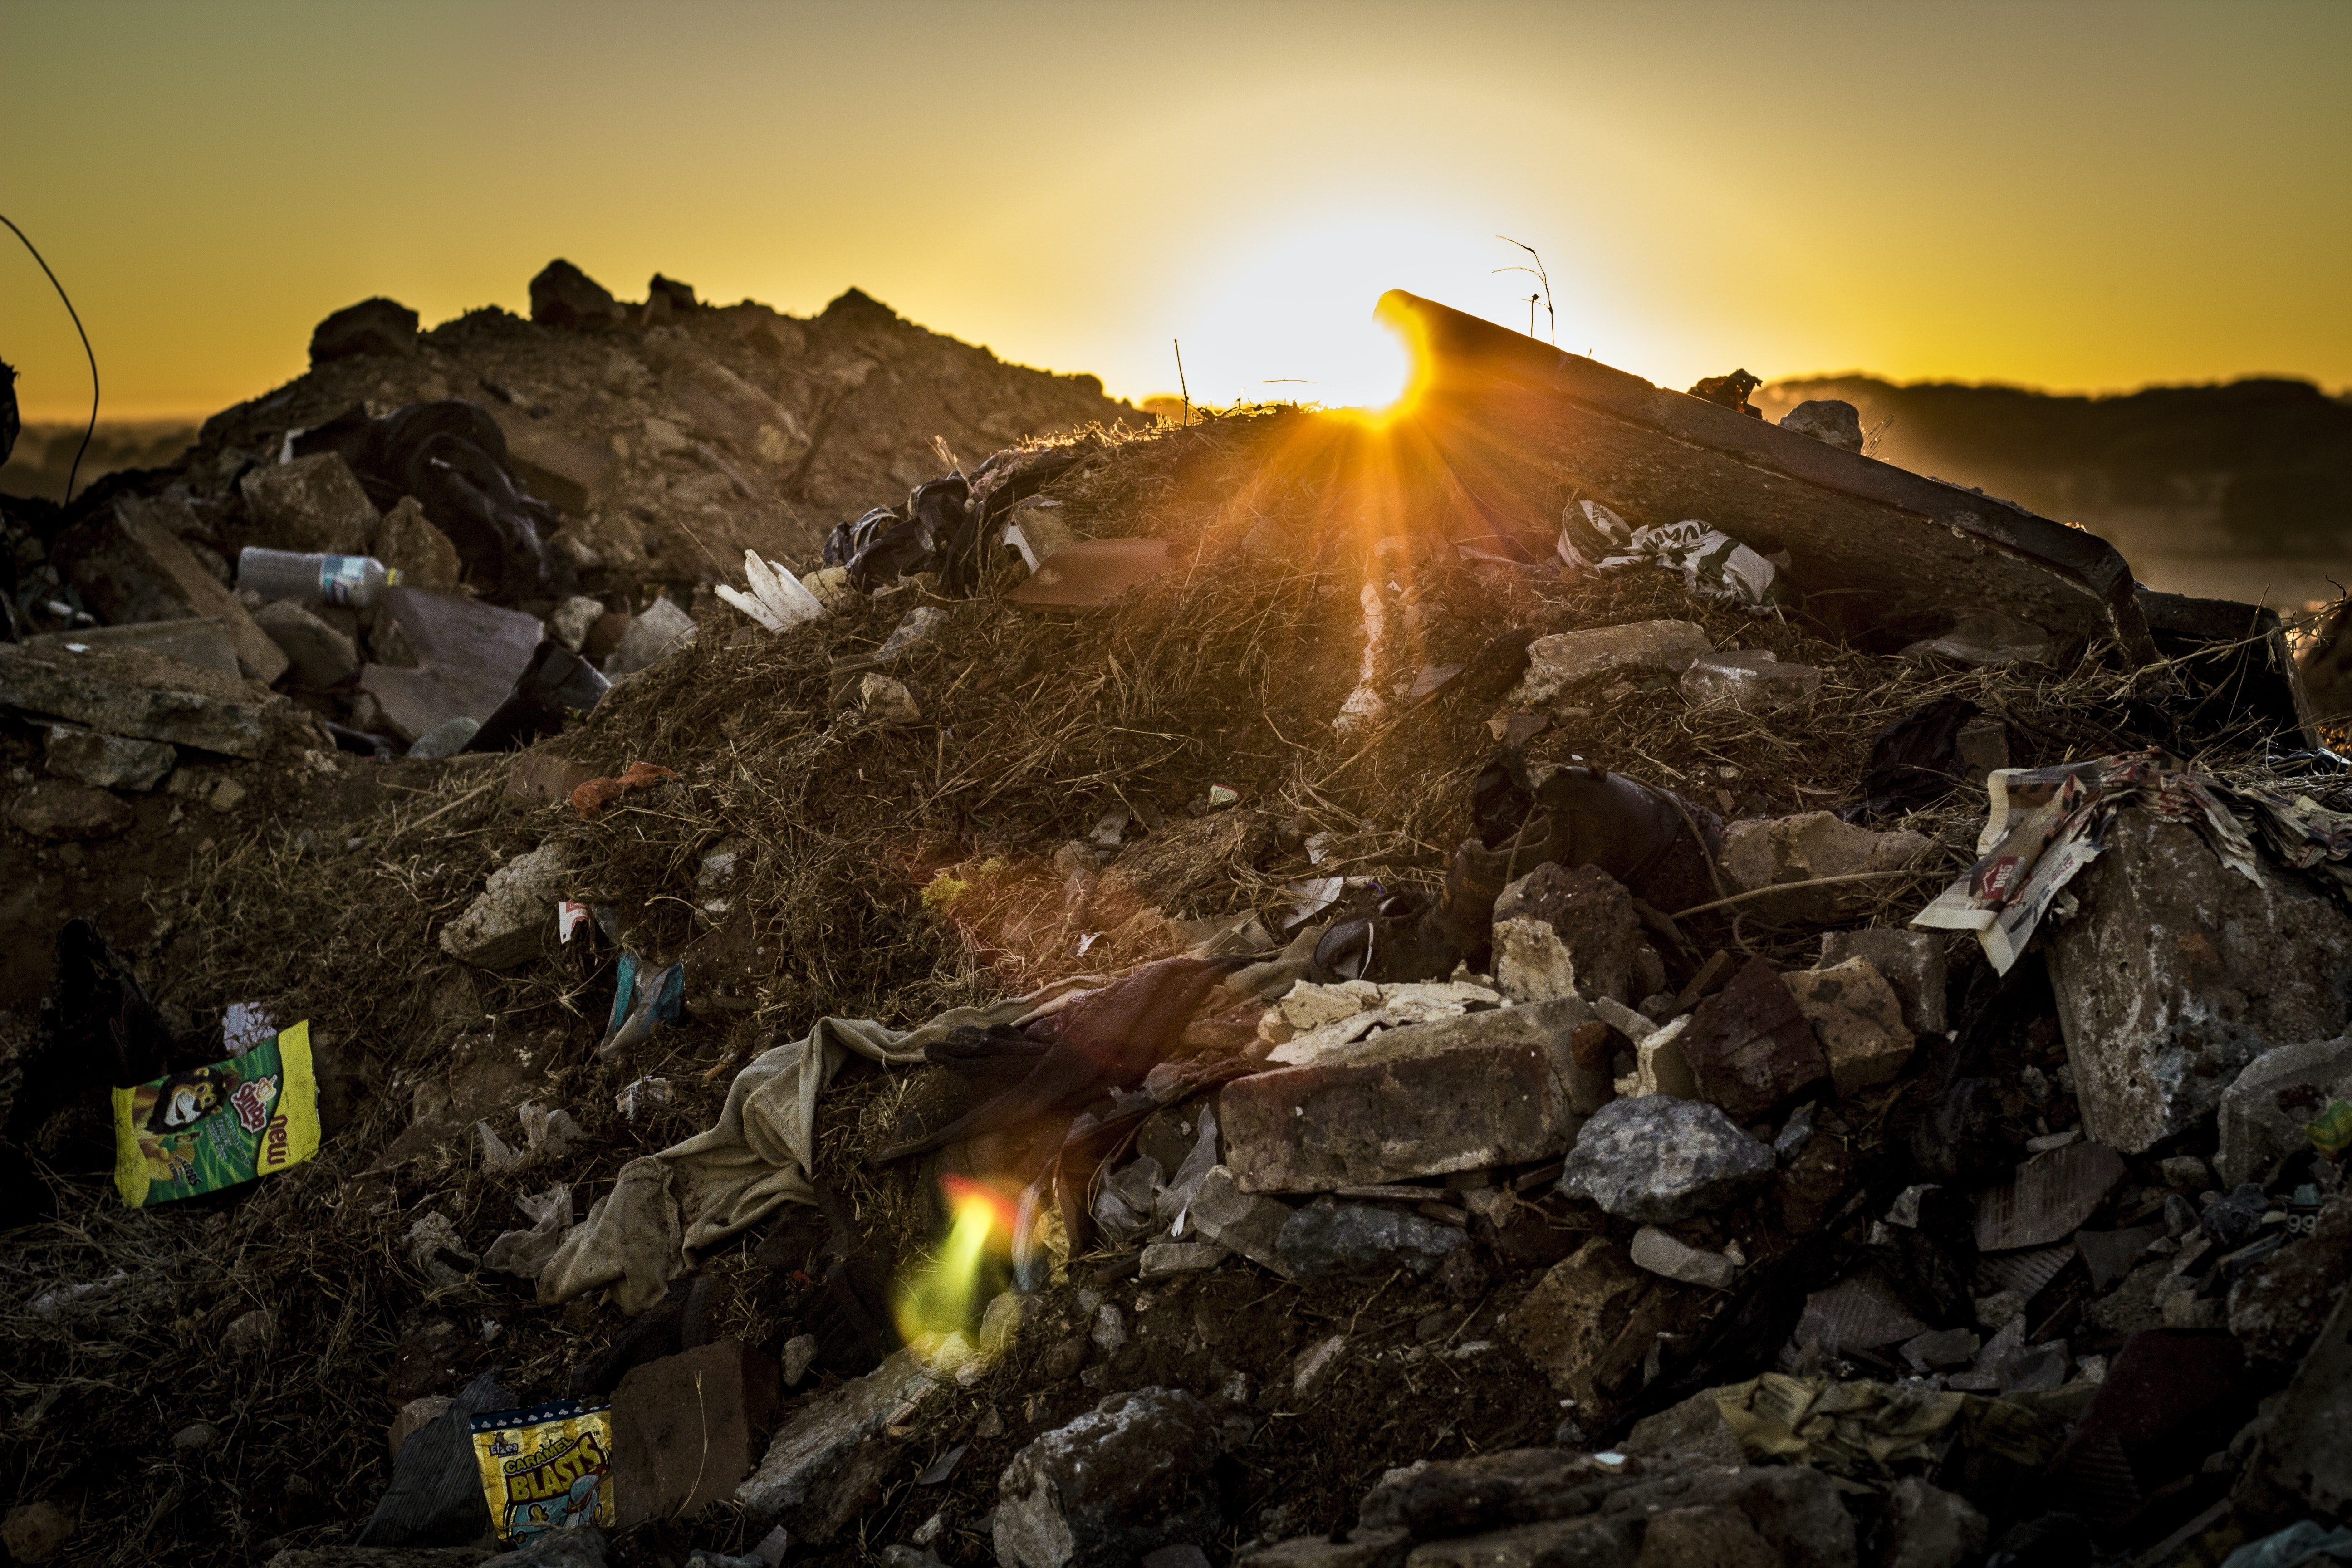 A picture of a local dump during sunset.